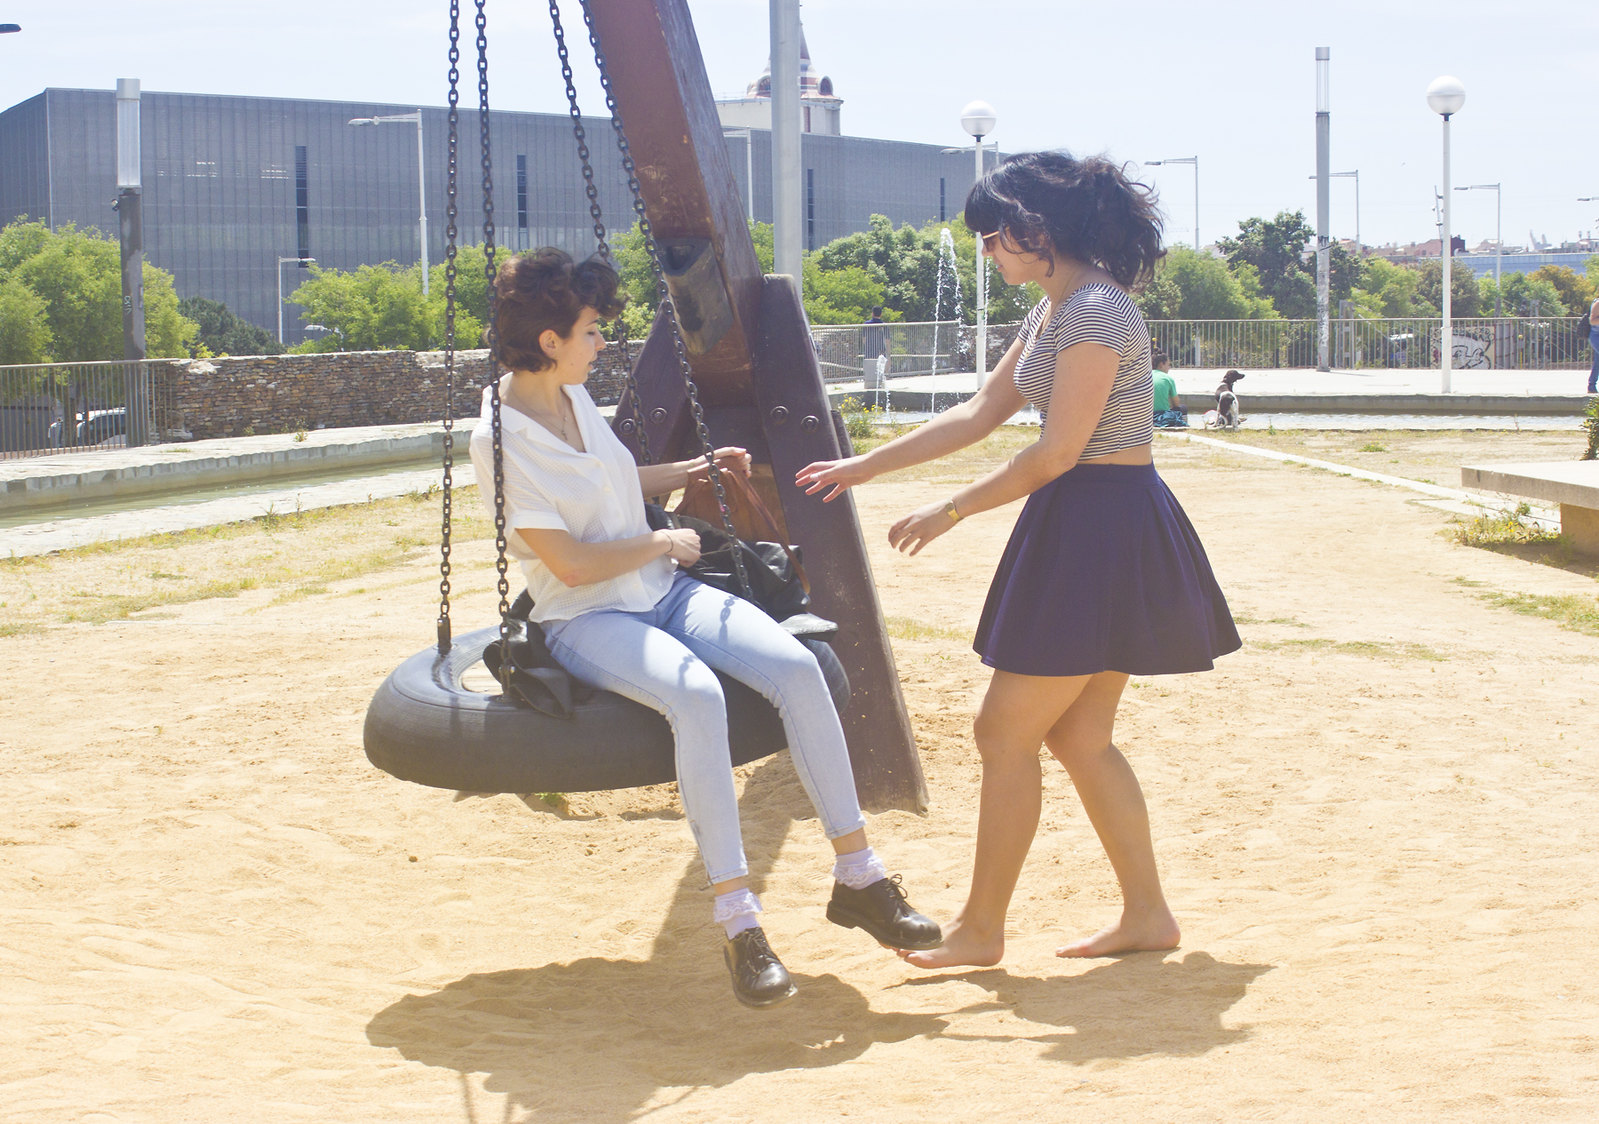 Girls in playground on giant tyre swing barcelona